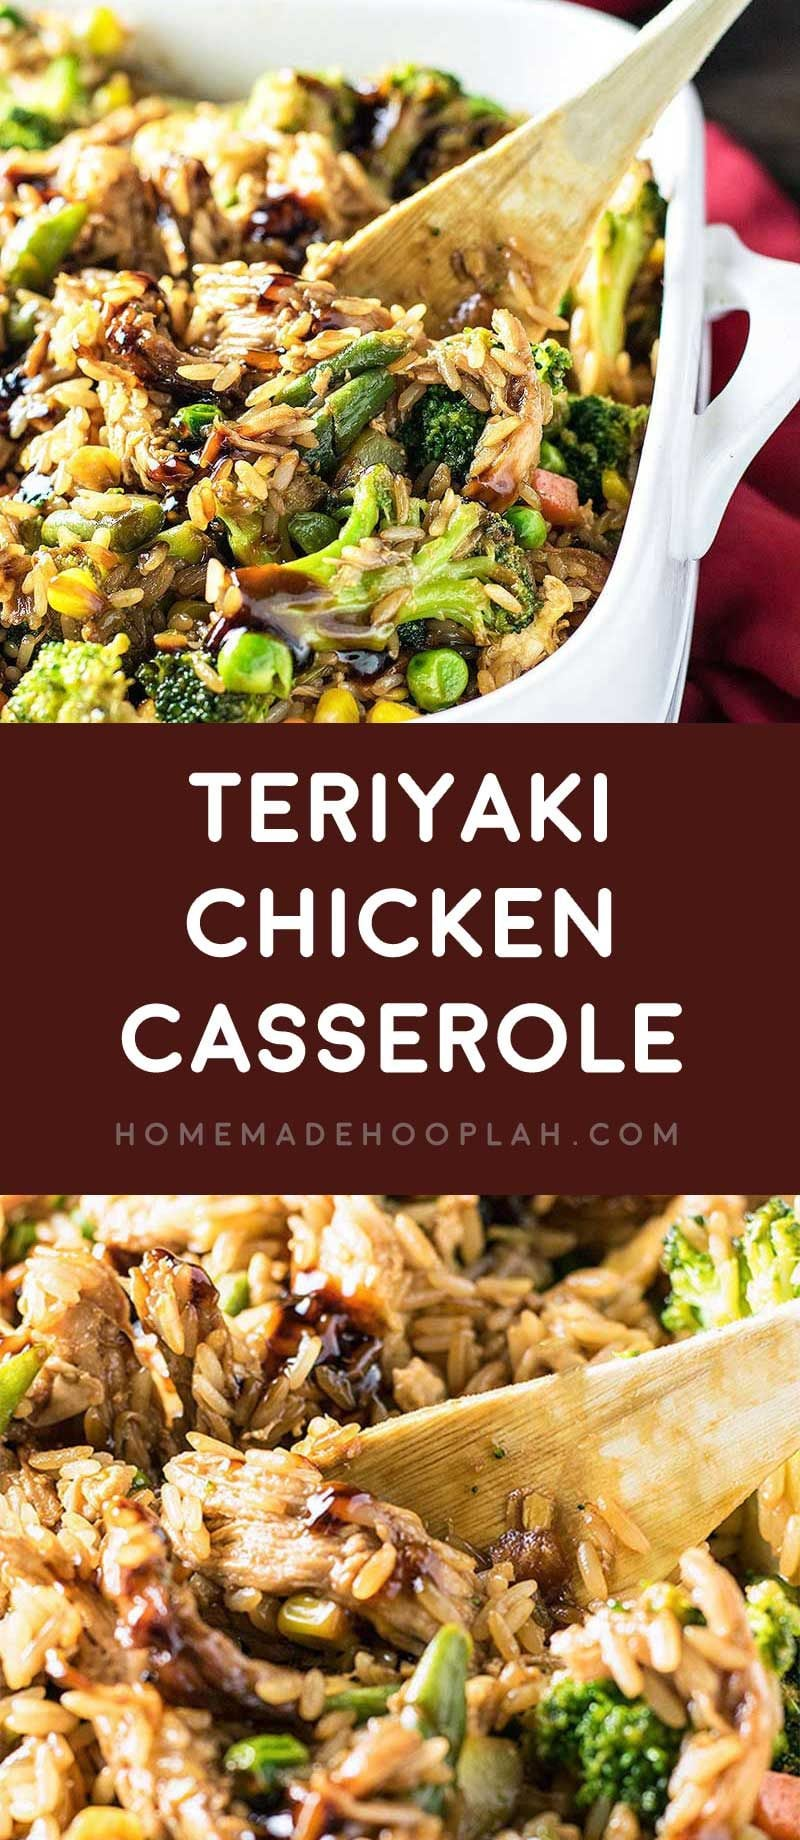 Teriyaki Chicken Casserole! Have your favorite Chinese takeout prepared in a different way: baked in a casserole dish with assorted veggies and fried rice.   HomemadeHooplah.com